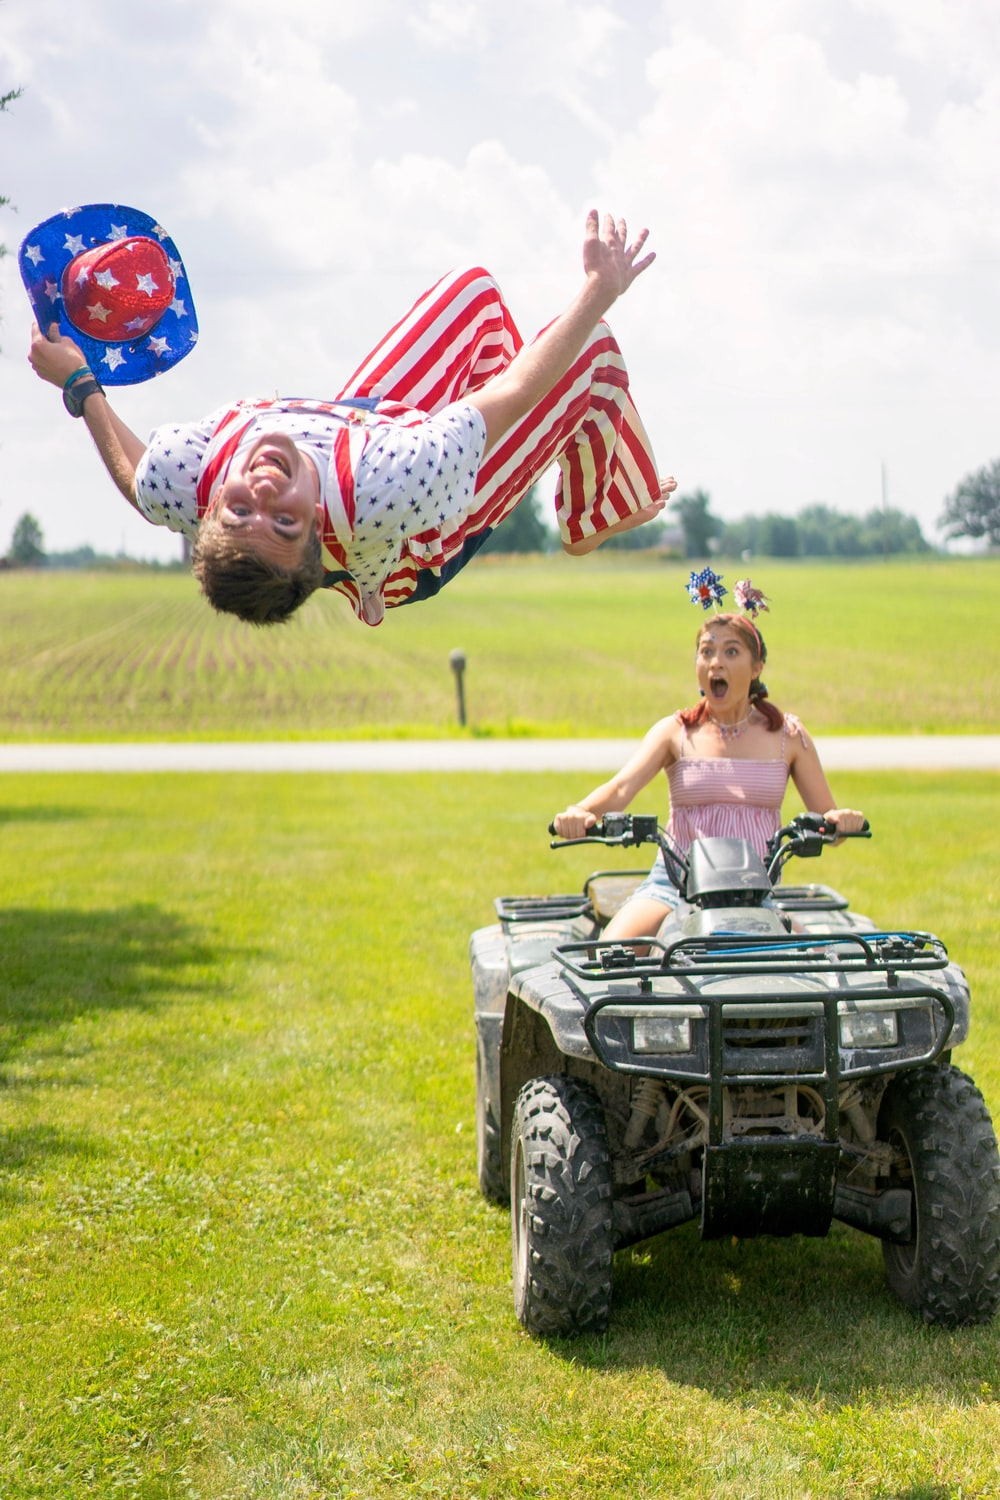 woman riding on ATV near man flying at the ground